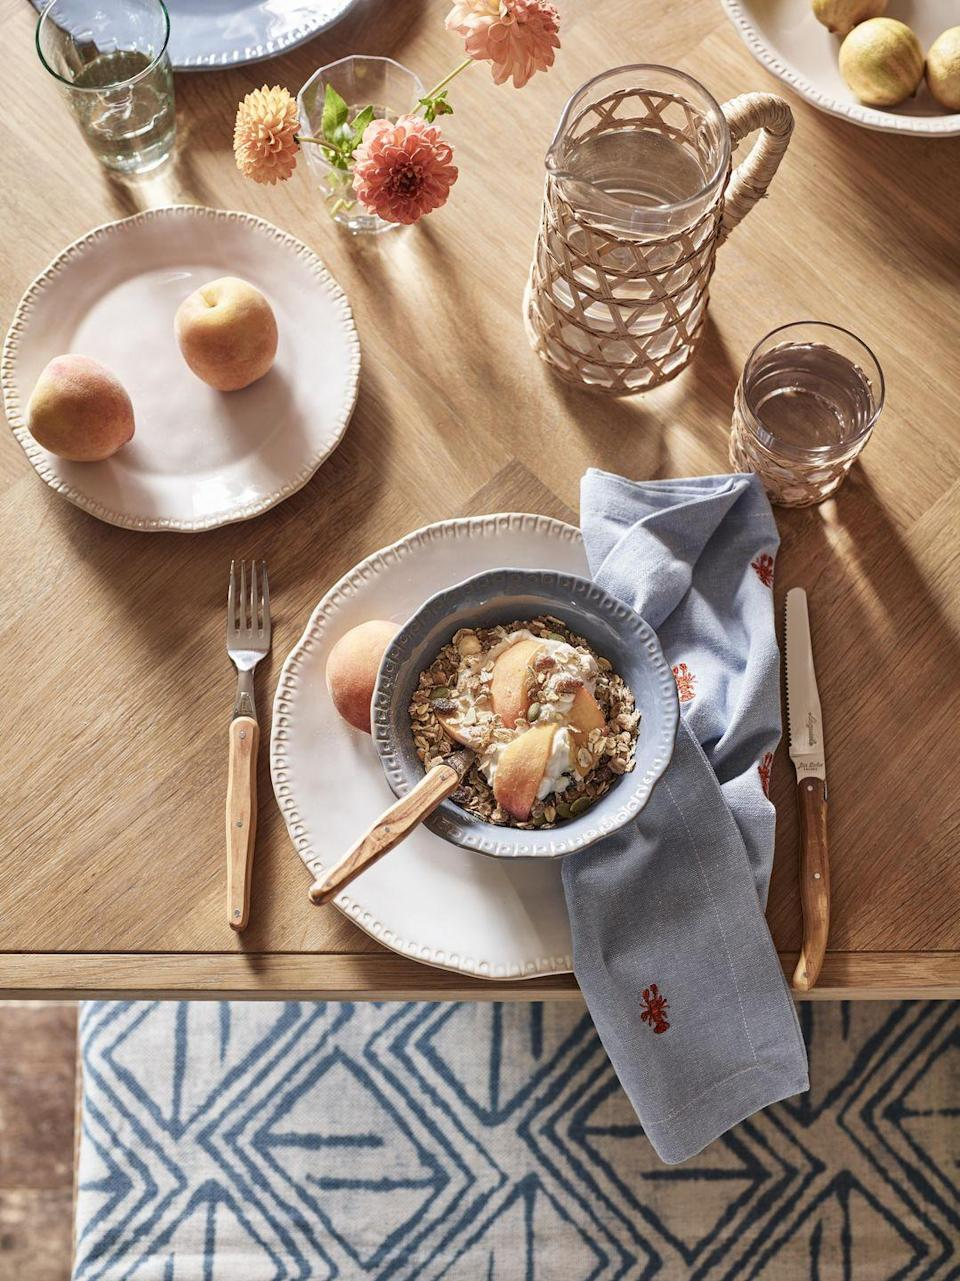 """<p>Spruce up your kitchen this season with John Lewis' range of gorgeous napkins, tableware, glasses and cutlery. With cereal bowls starting from just £6, there's something here for everyone. Coffee, anyone? </p><p><a class=""""link rapid-noclick-resp"""" href=""""https://go.redirectingat.com?id=127X1599956&url=https%3A%2F%2Fwww.johnlewis.com%2Fbrowse%2Fhome-garden%2Fnew-in-home%2F_%2FN-7opk&sref=https%3A%2F%2Fwww.housebeautiful.com%2Fuk%2Flifestyle%2Fshopping%2Fg35369005%2Fjohn-lewis-partners-homeware-spring-summer%2F"""" rel=""""nofollow noopener"""" target=""""_blank"""" data-ylk=""""slk:SHOP NOW"""">SHOP NOW</a></p>"""